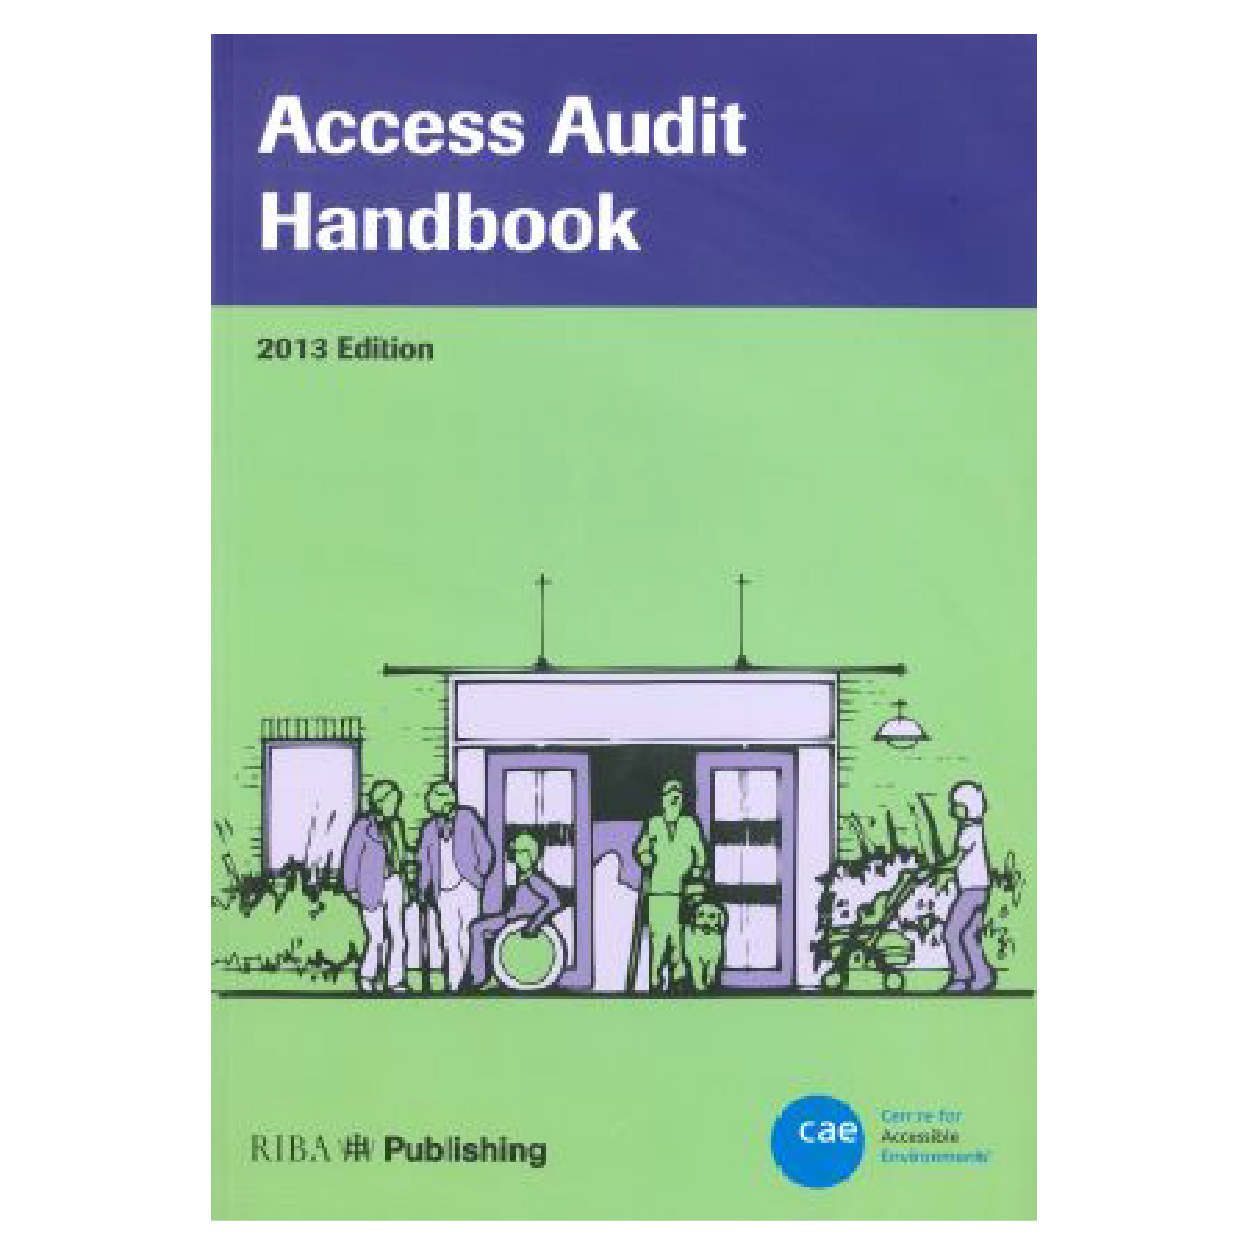 PRODUCT access audit handbook